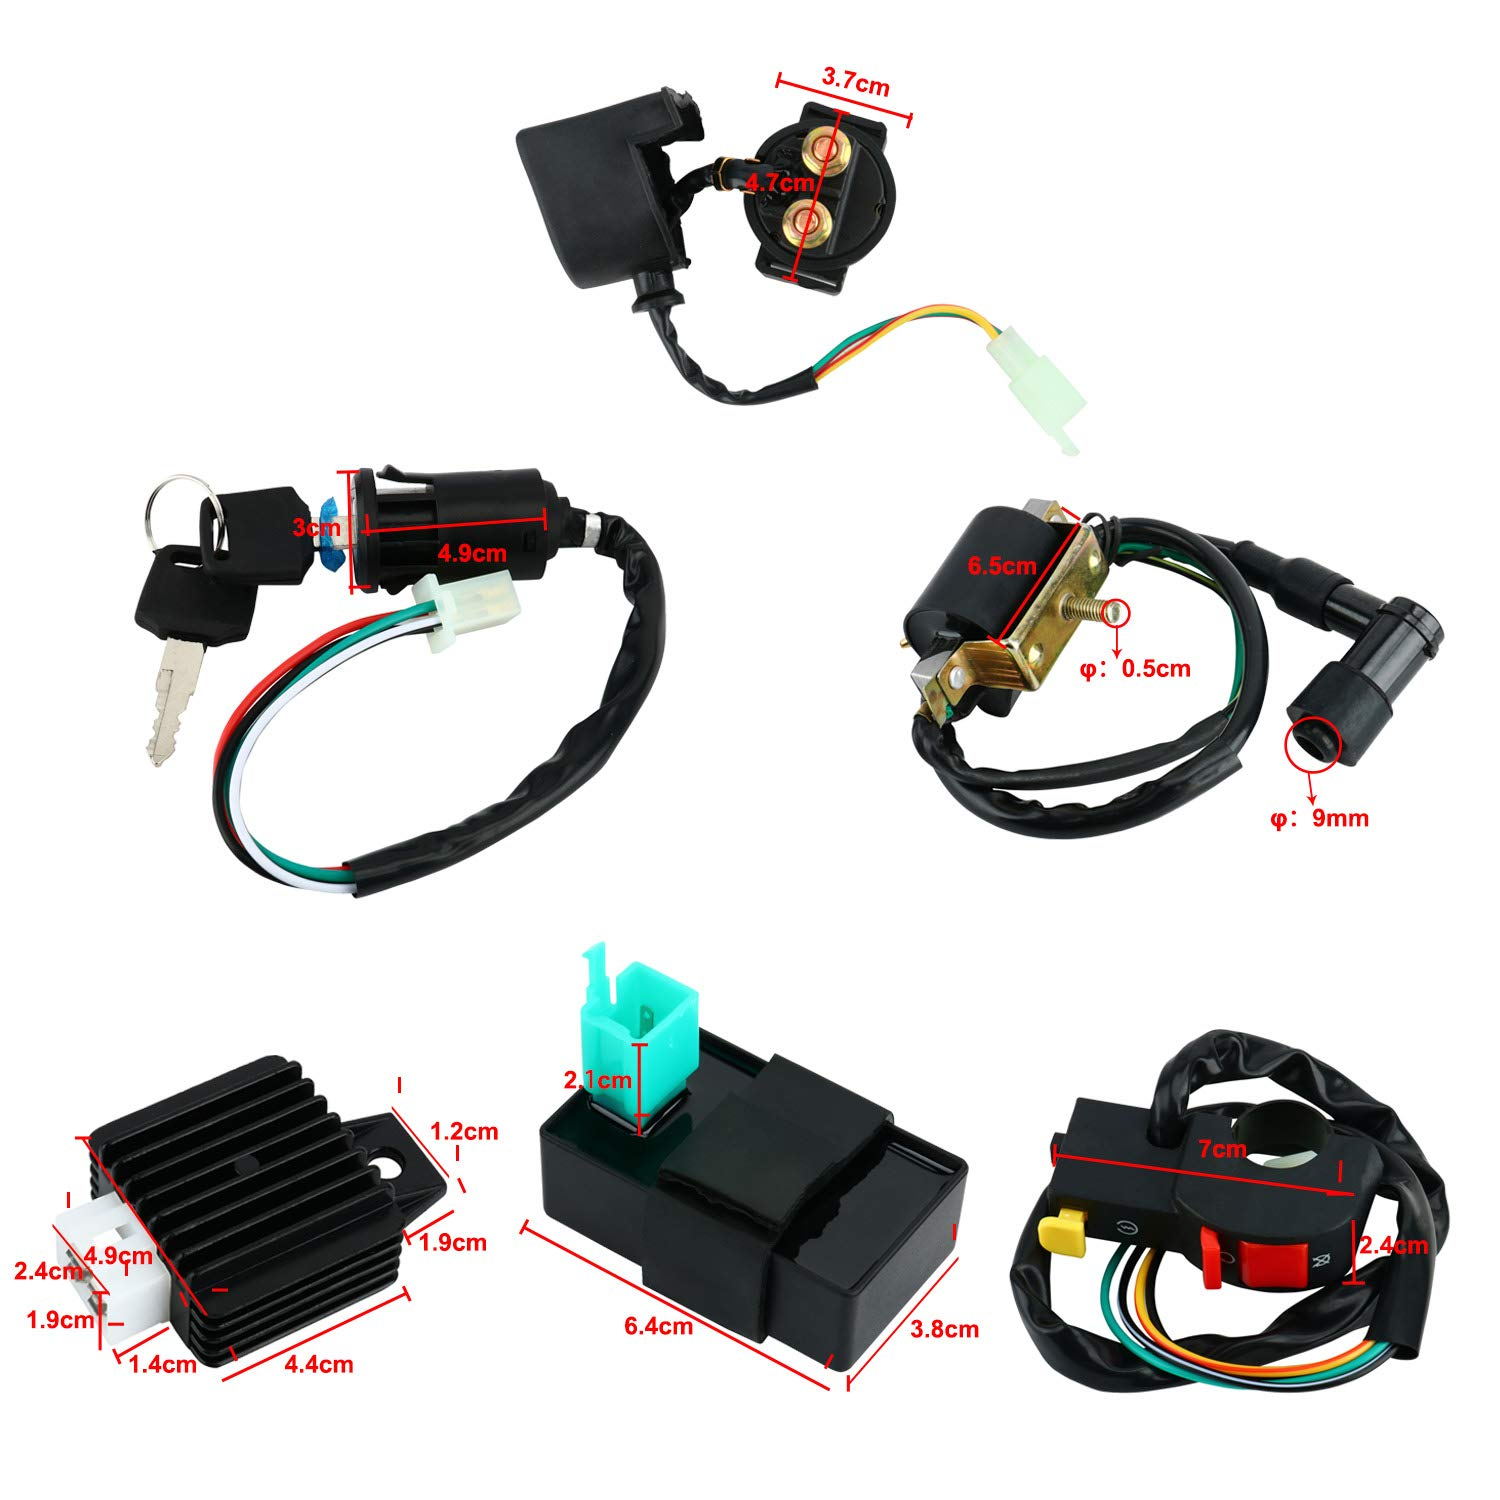 YaeGarden CDI Coil Electric Stator Coil CDI Igination Coil CDI Wiring  Harness Kit CDI Wire Assembly for 4 Stroke ATV KLX 50cc 110cc 125cc Quad  Bike Buggy Go Kart - Walmart.com -Walmart